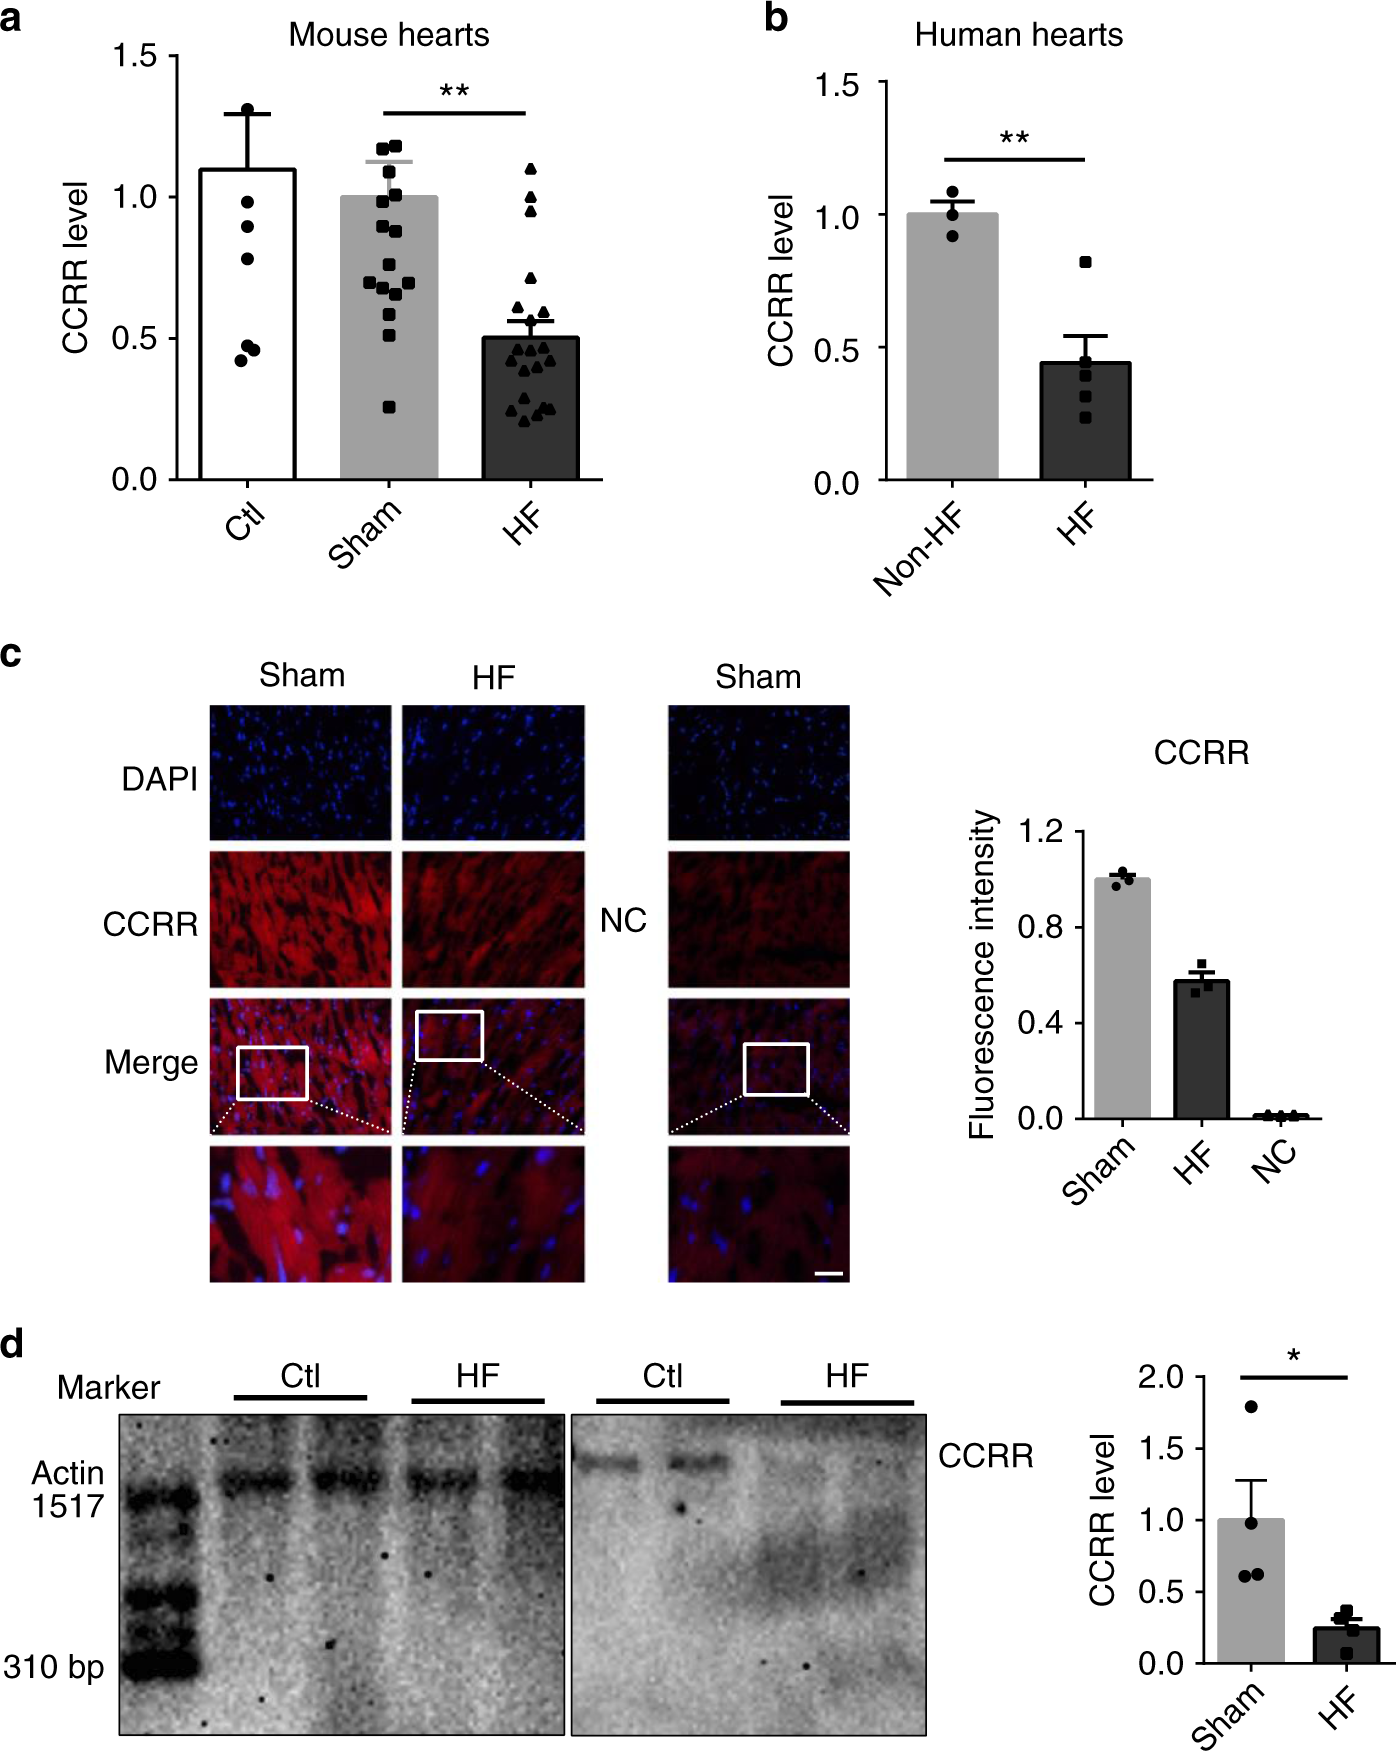 Long non-coding RNA CCRR controls cardiac conduction via